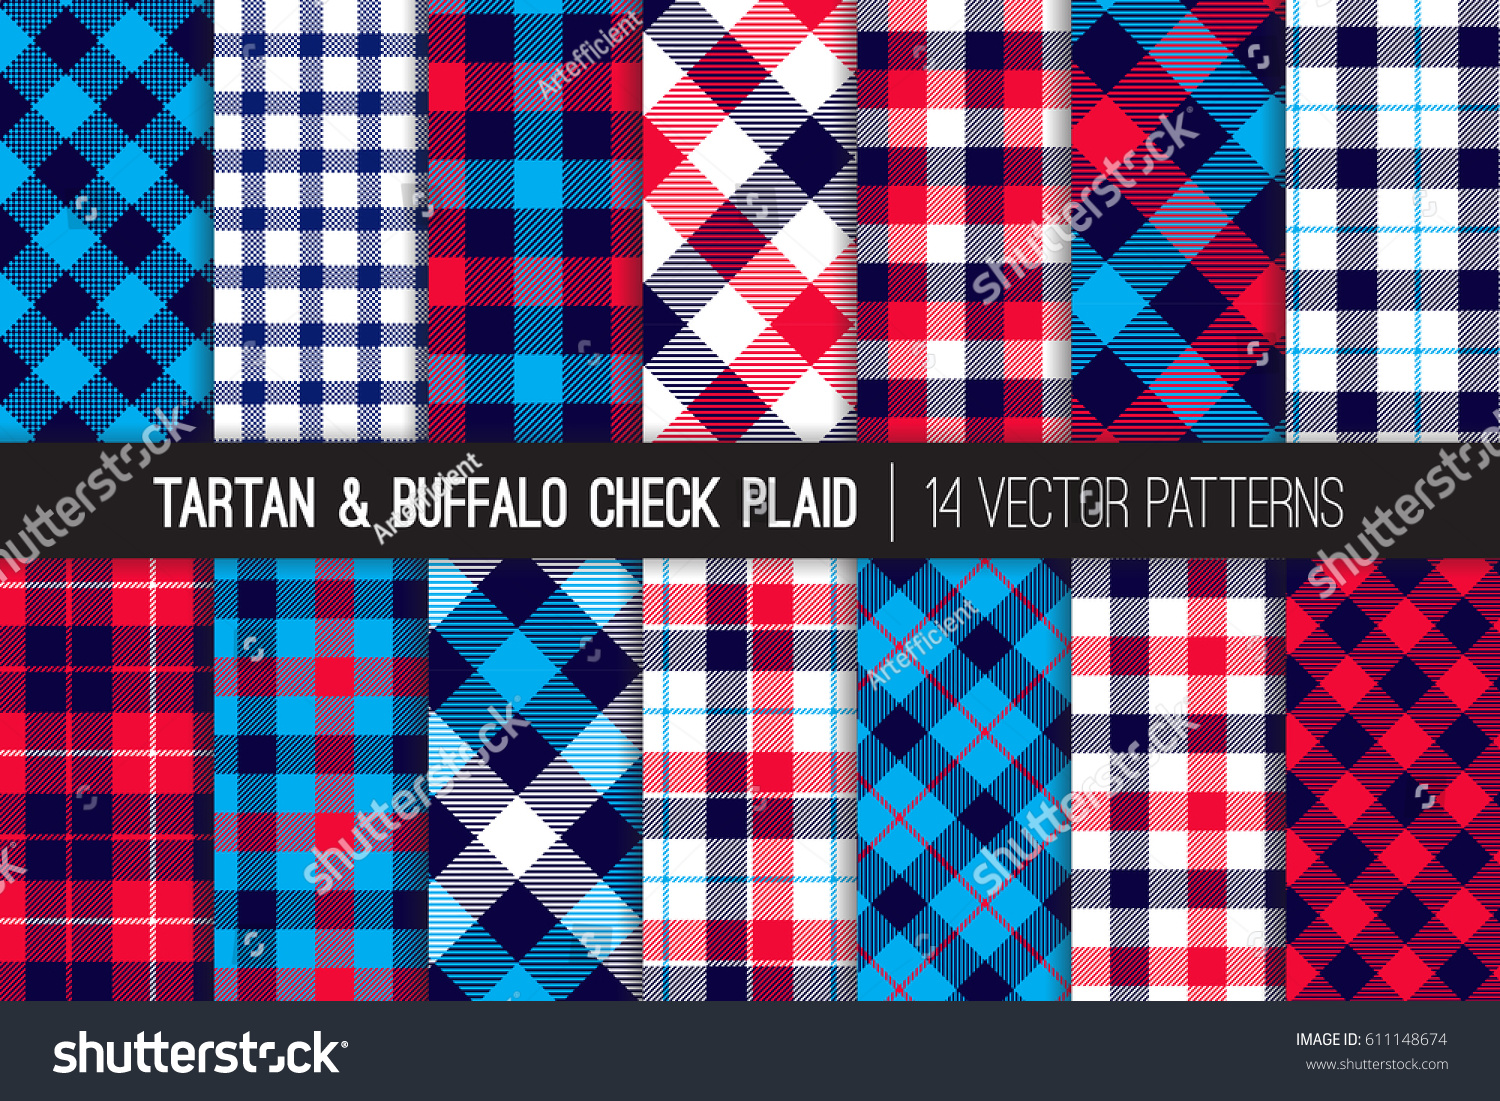 Patriotic Red, White, Blue Tartan and Buffalo Check Plaid Vector Patterns. Hipster Lumberjack Flannel Shirt Fabric Textures. July 4th Independence Day Backgrounds. Pattern Tile Swatches Included.